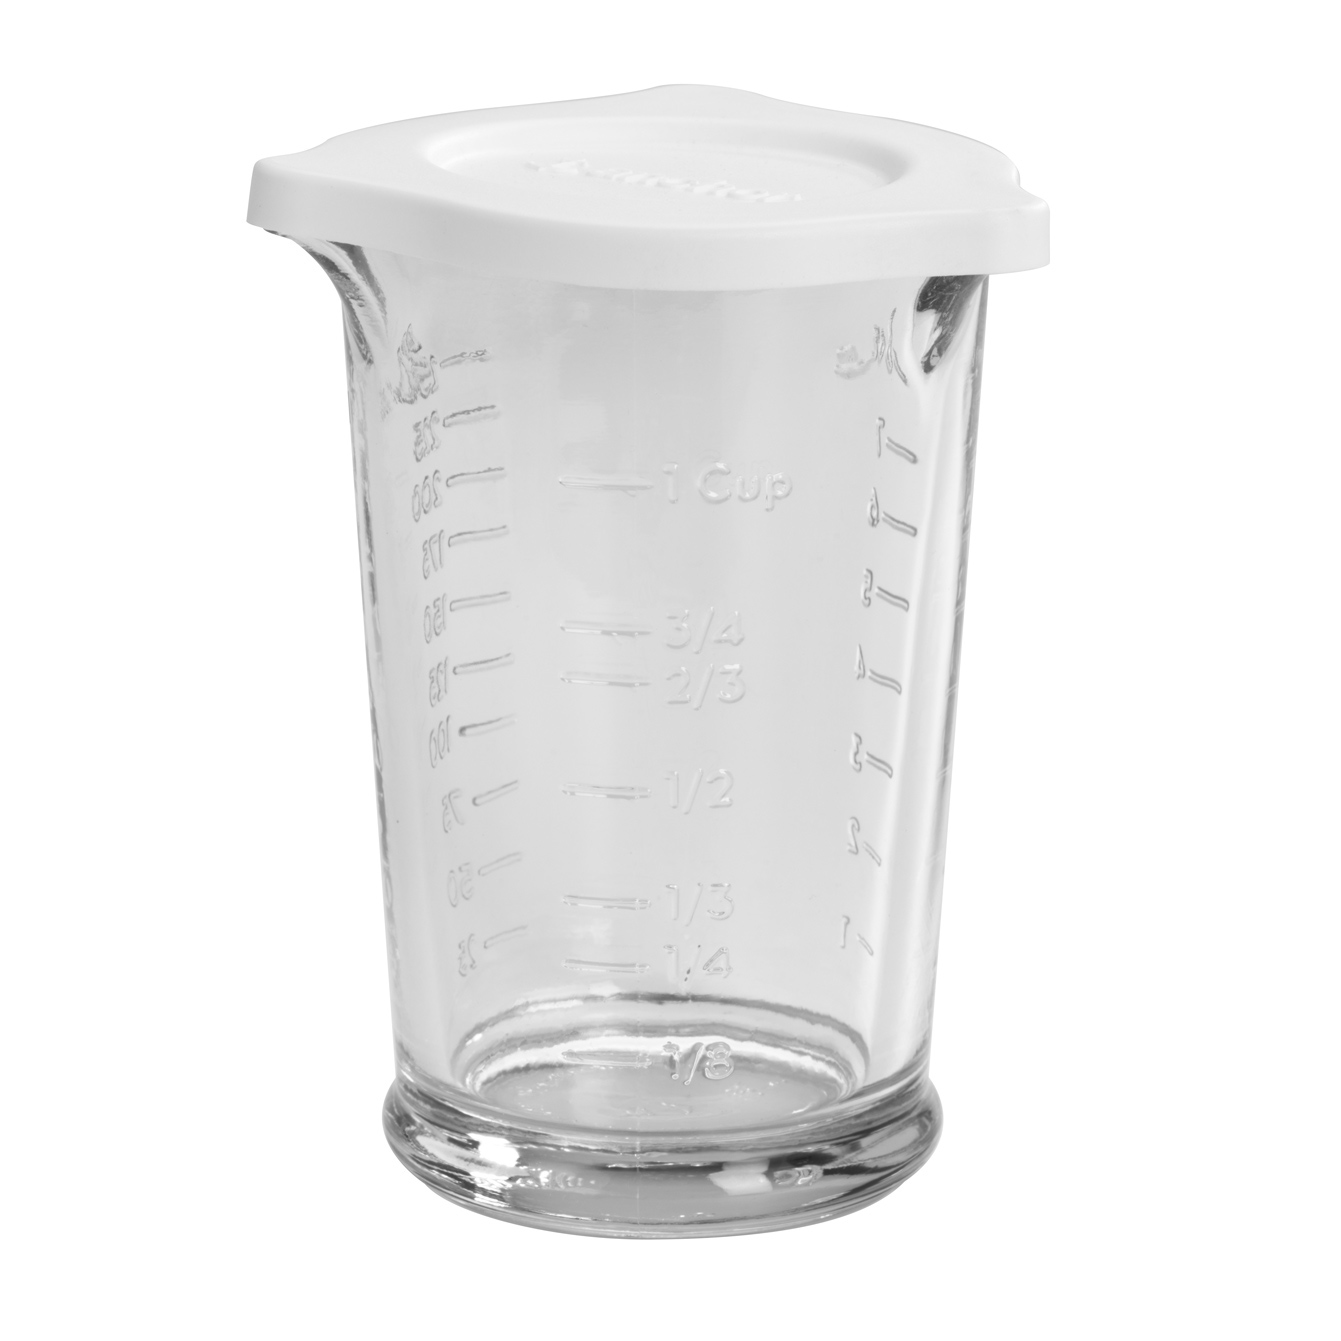 Anchor Hocking Foodservice 94793AHG18 measuring cups